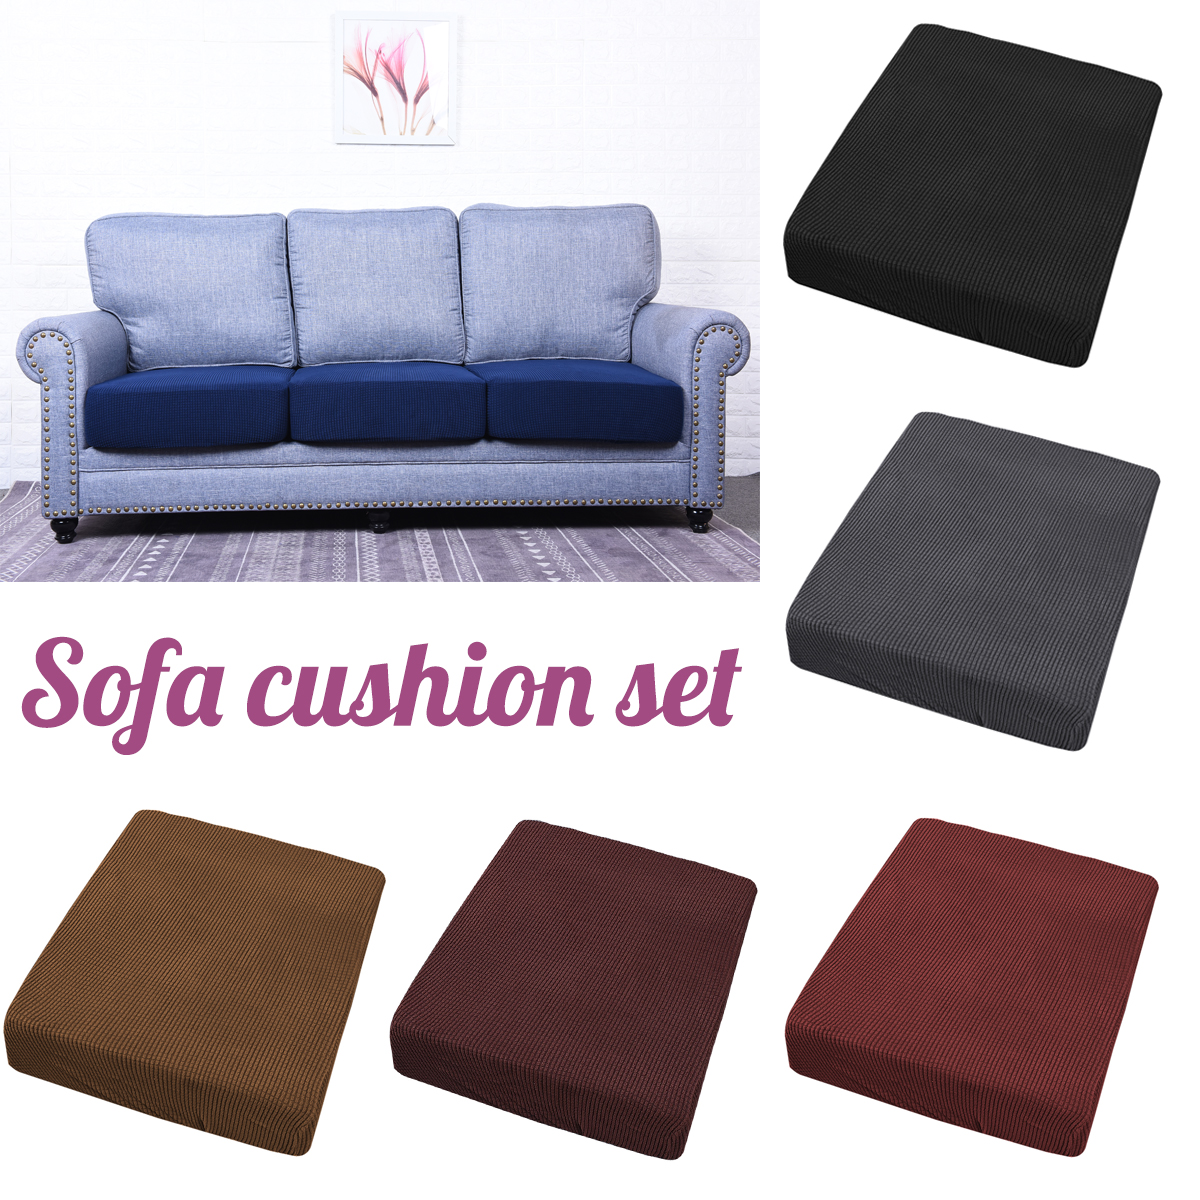 Couch Covers Stretchy Sofa Seat Cushion Cover Couch Slip Covers Protector